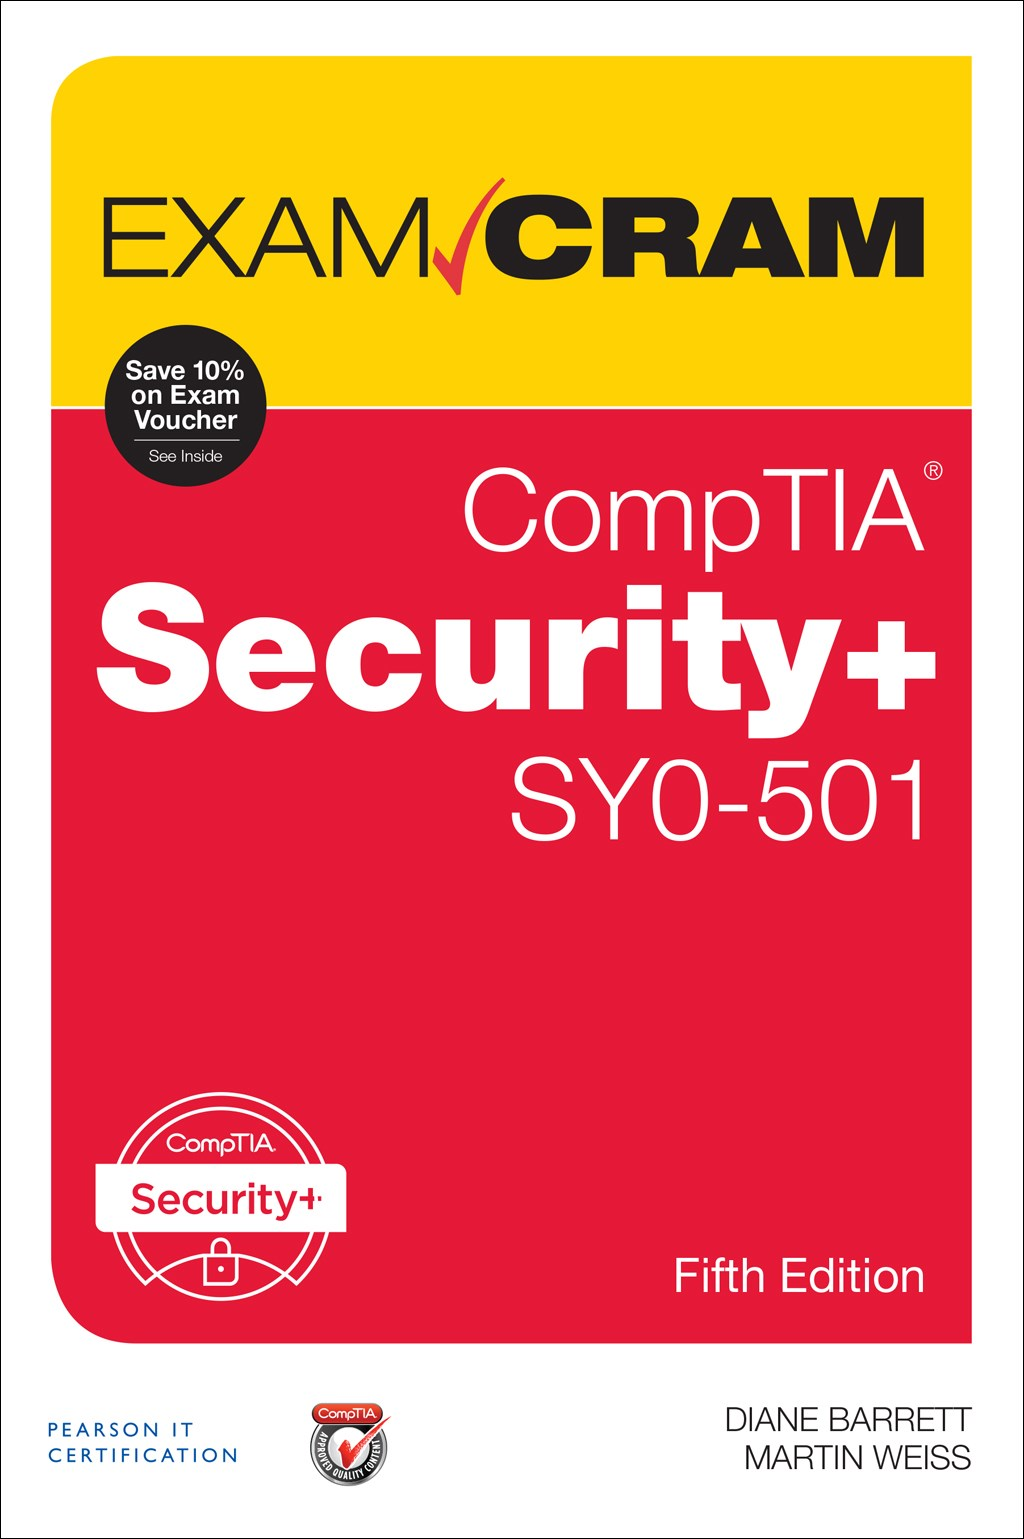 CompTIA Security+ SY0-501 Exam Cram, 5th Edition